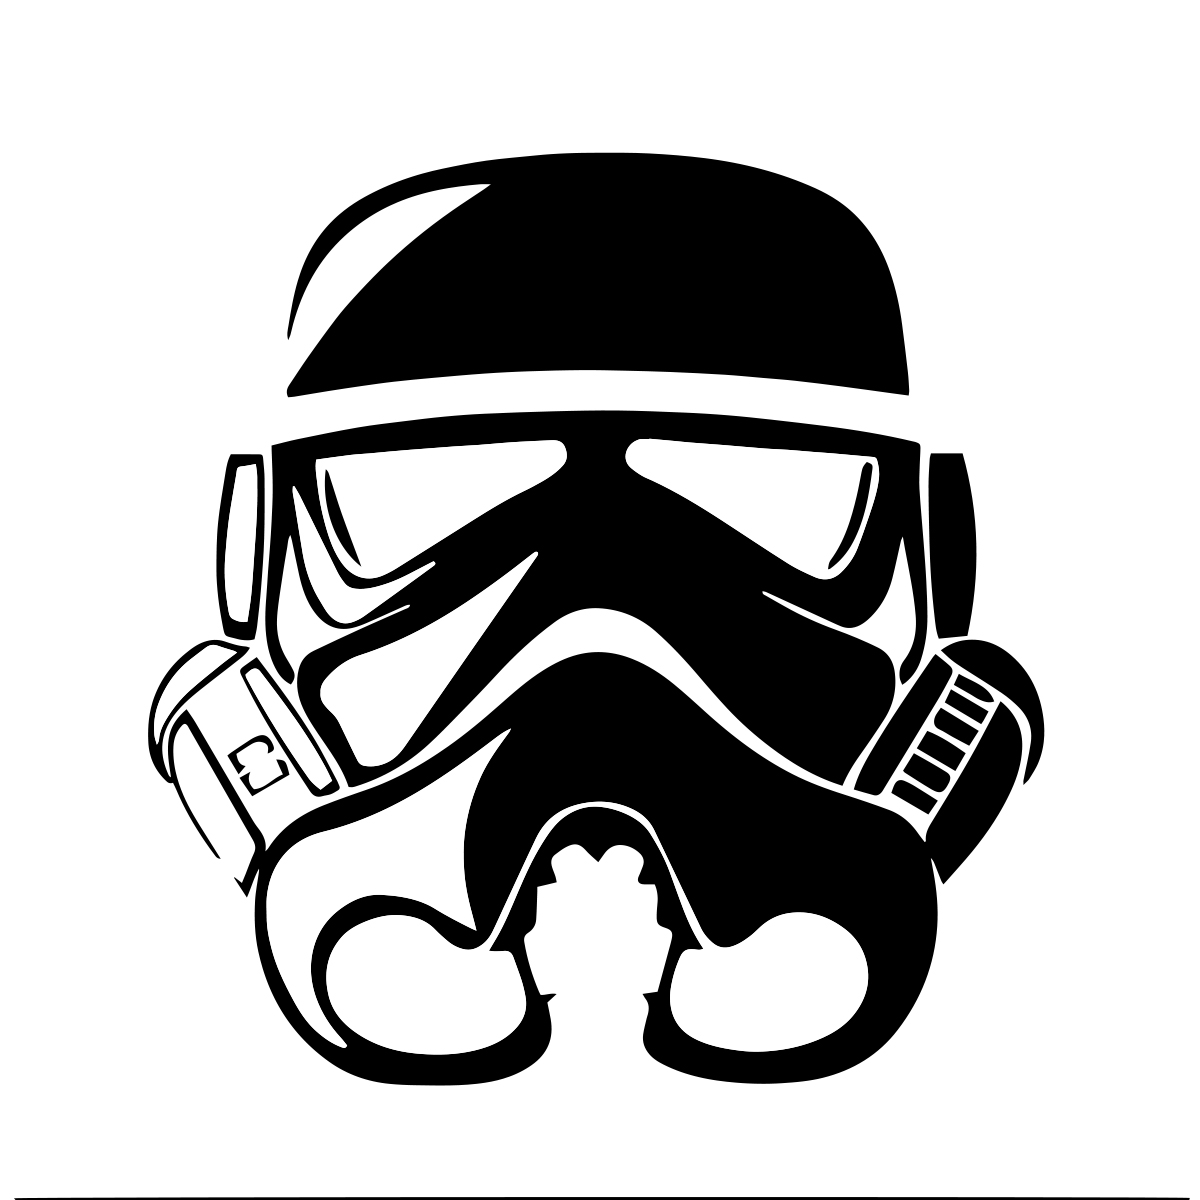 Storm Trooper Helmet Auto Car Racing Motorcycle Helmet Decal